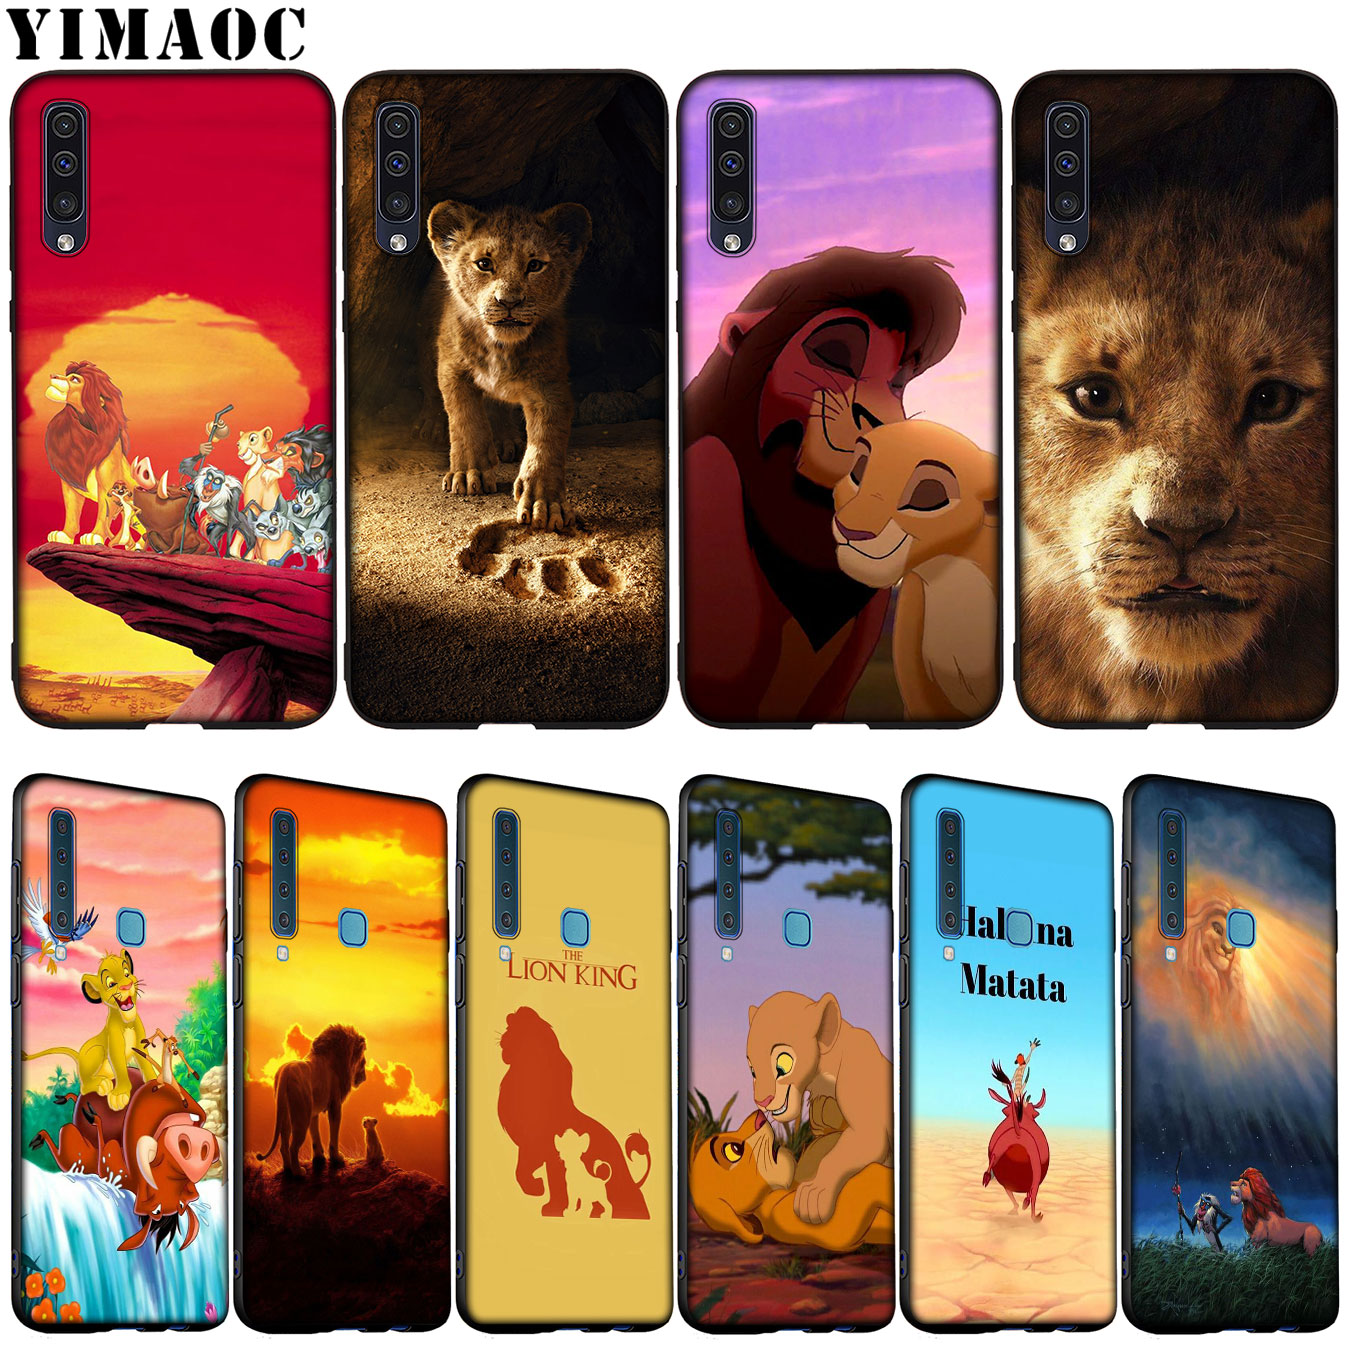 YIMAOC <font><b>Cartoon</b></font> The lion king Soft Silicone <font><b>Case</b></font> for Samsung Galaxy A70 A60 <font><b>A50</b></font> A40 A30 A20 A10 A10S A20S A30S A40S A50S Cover image